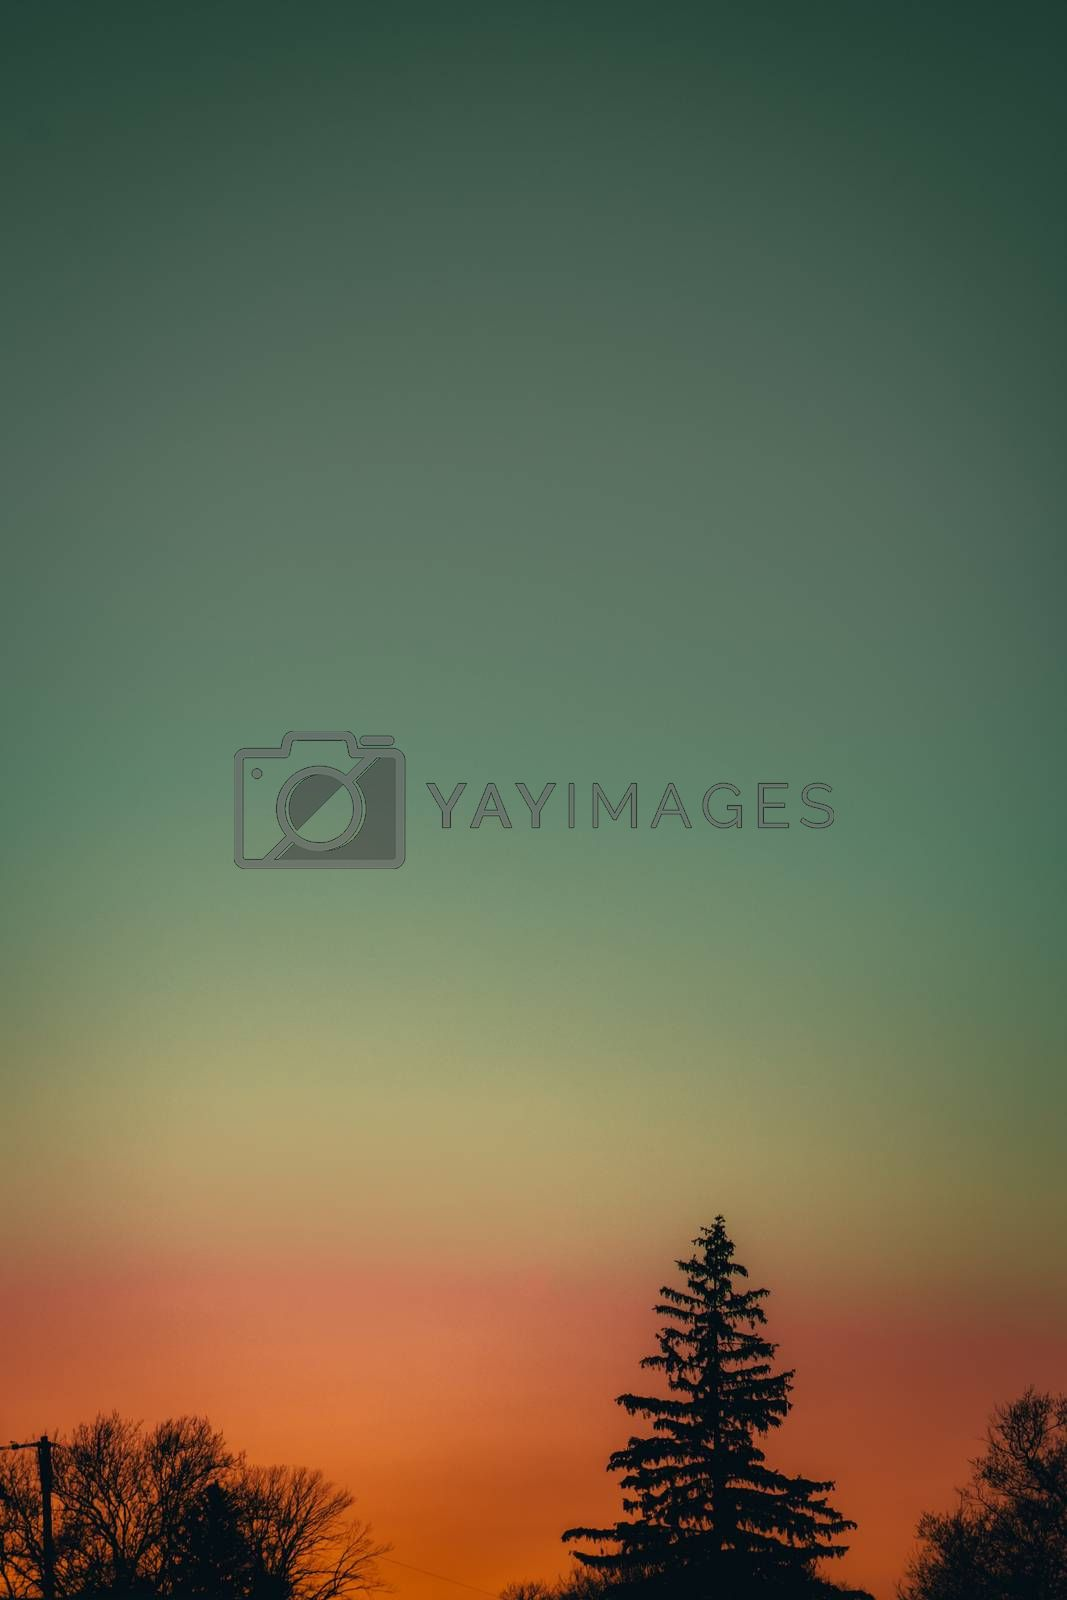 A Dramatic and Clear Orange and Blue Sky With Silhouetted Trees at the Bottom of the Frame